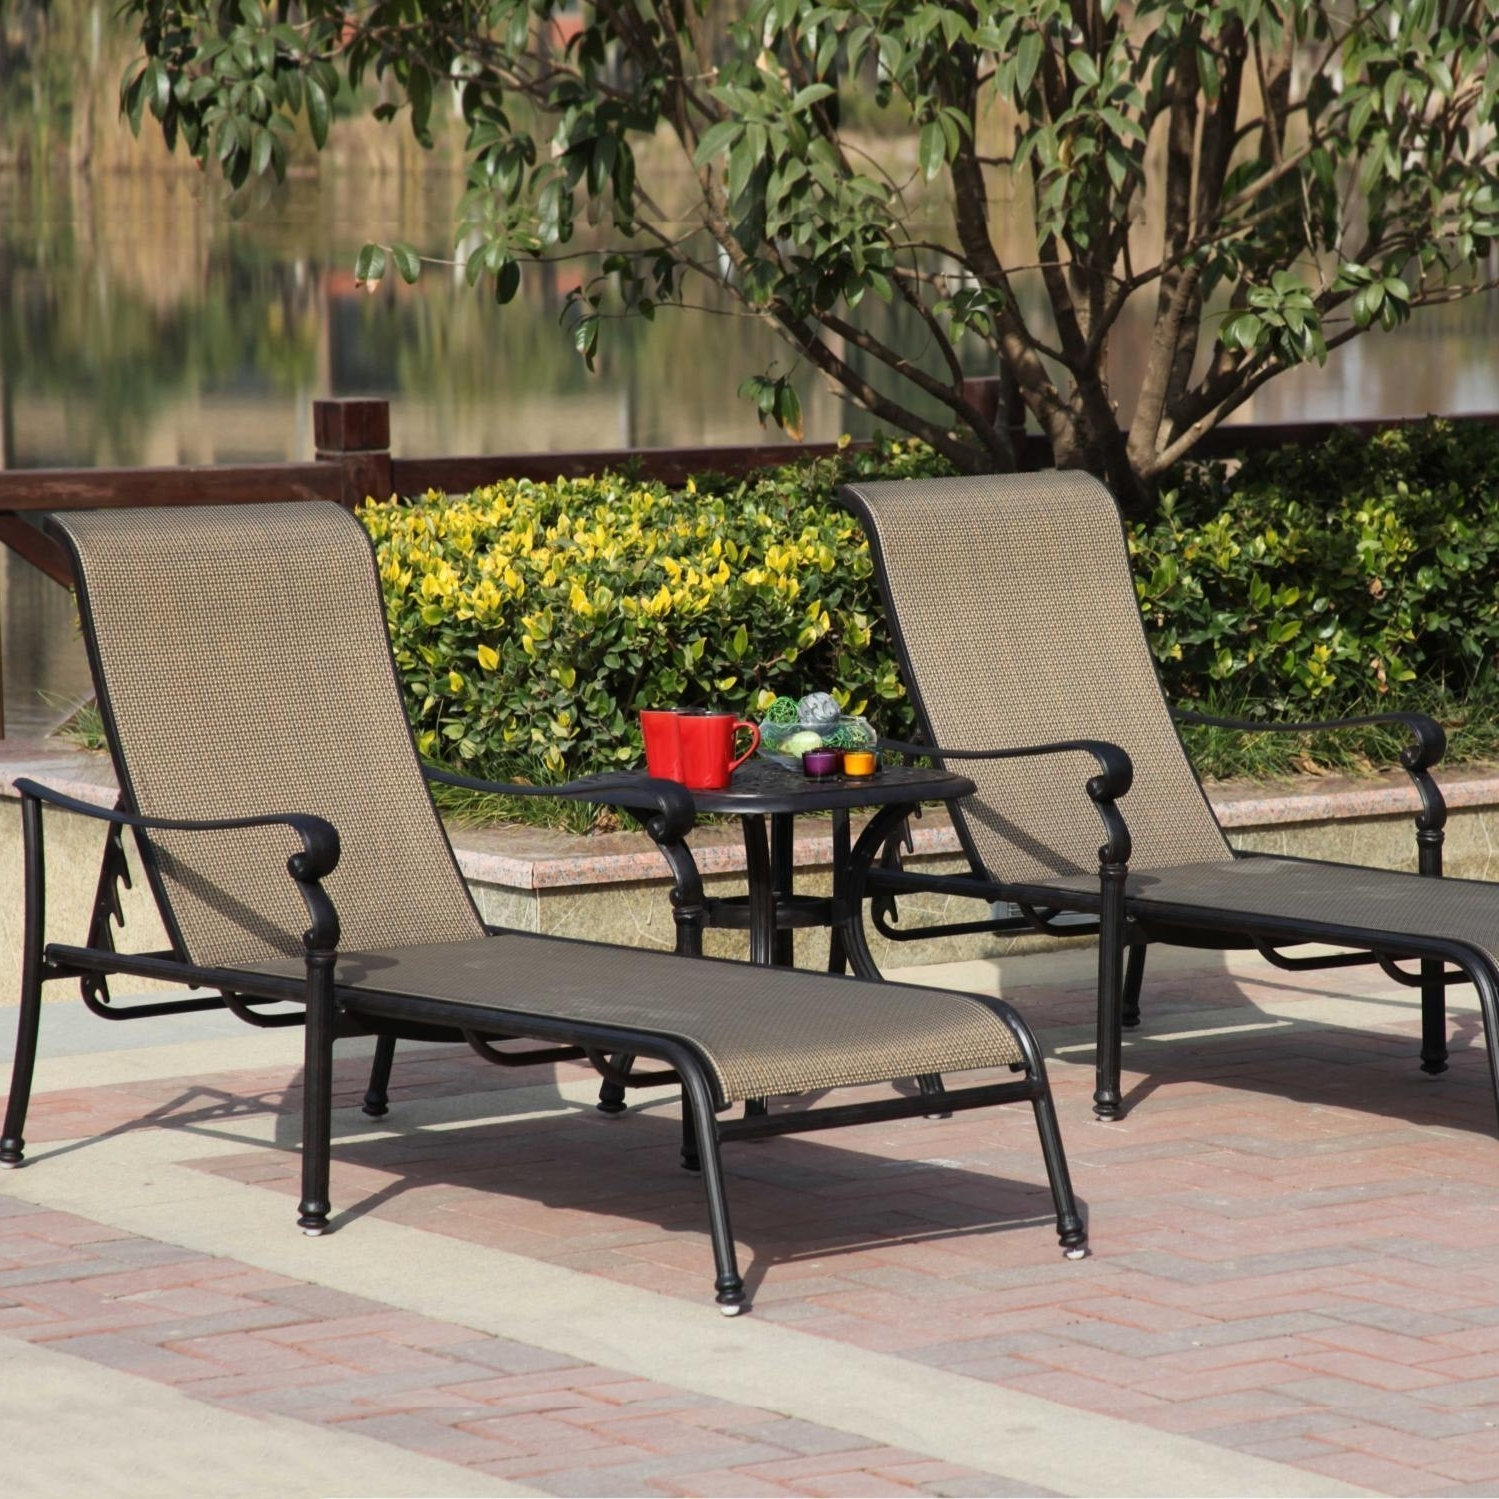 Darlee Monterey 3 Piece Sling Patio Chaise Lounge Set : Ultimate Patio Regarding Famous Patio Chaise Lounges (View 10 of 15)